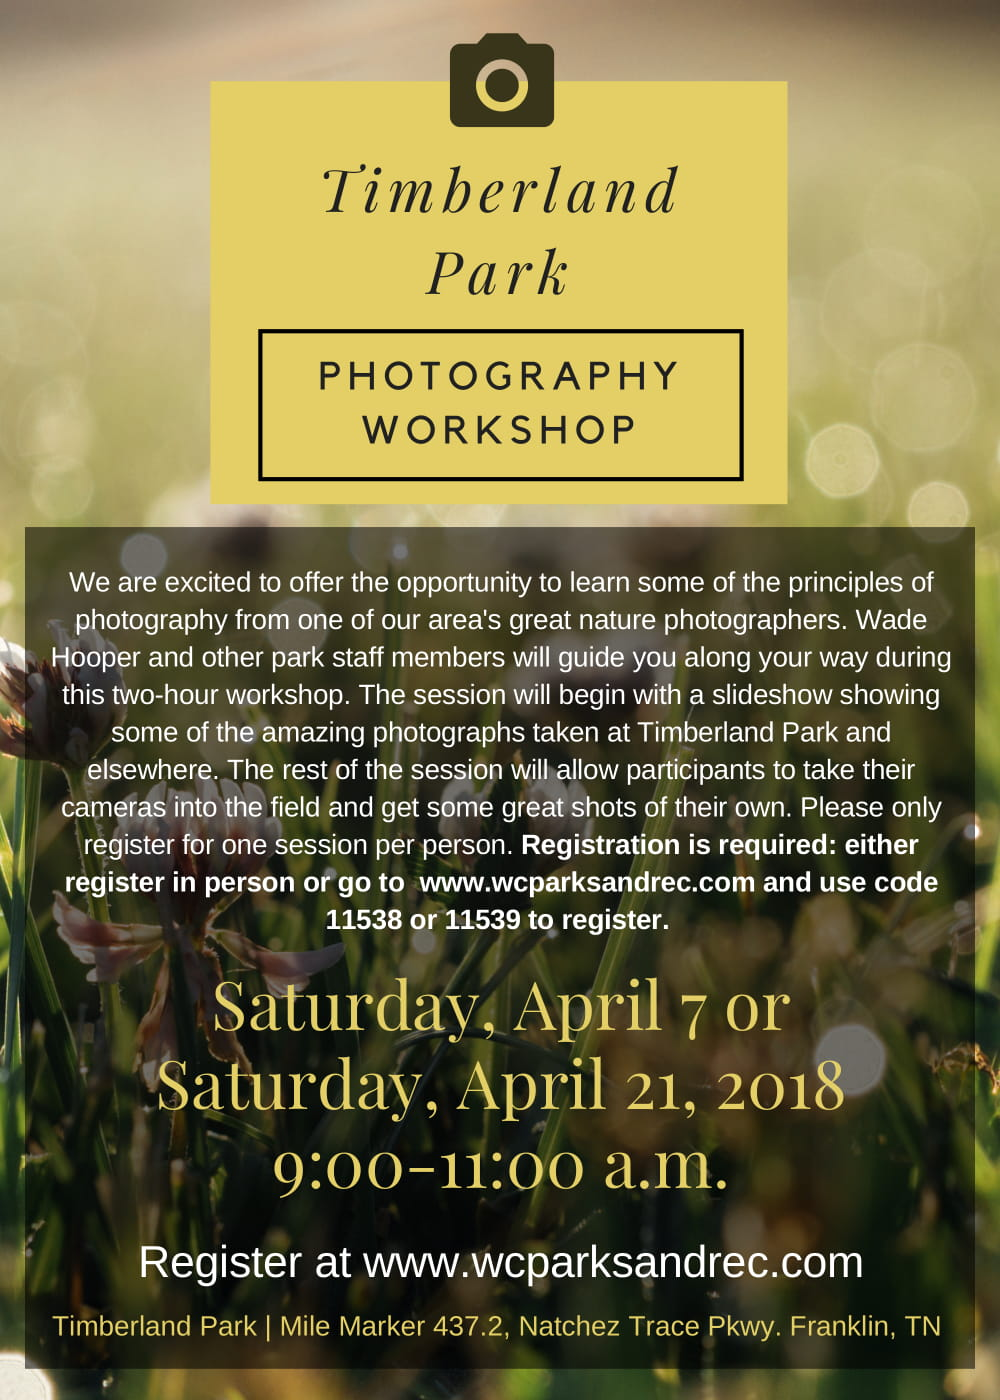 Timberland Park Photography Workshops